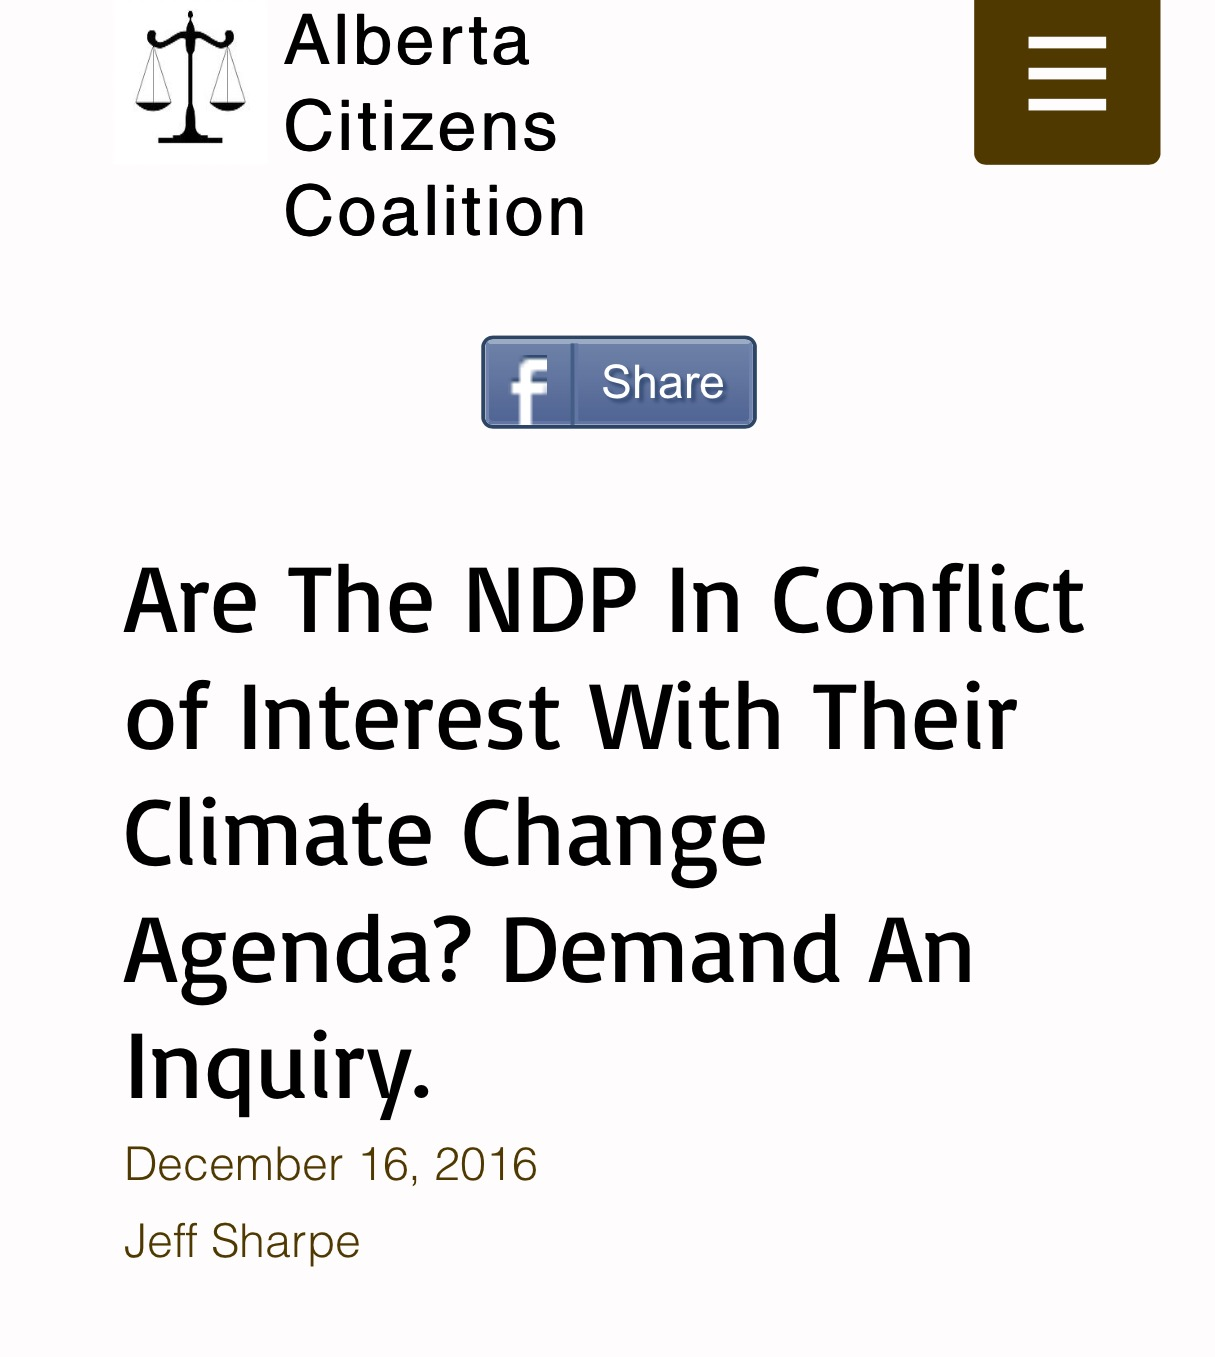 Deceember 16, 2016: Green Corruption Files Found at Alberta Citizens Coalition